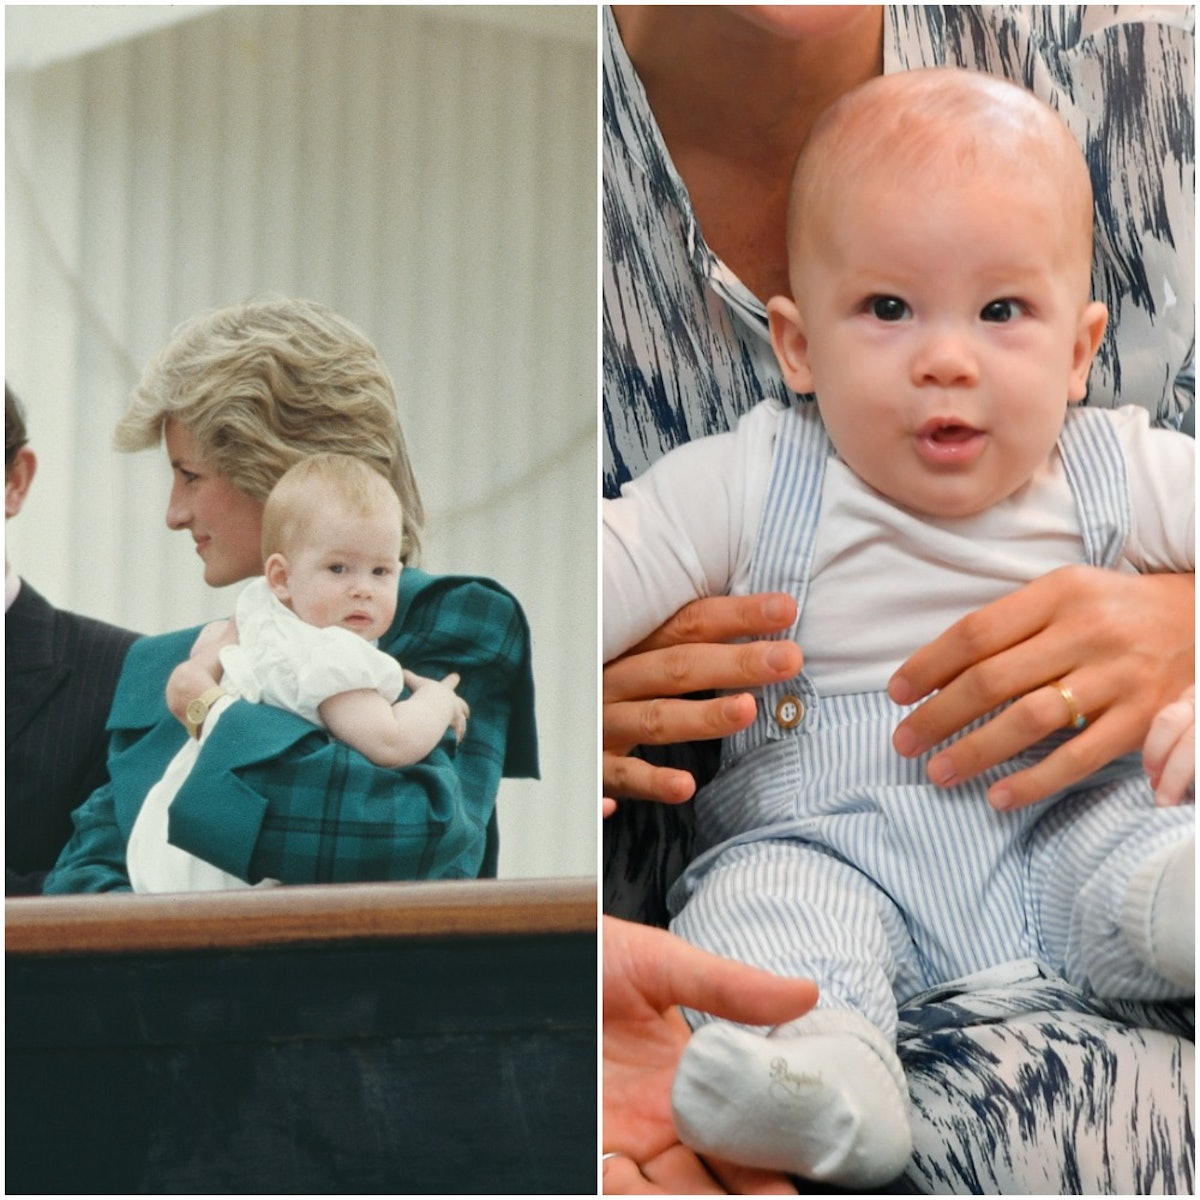 A side-by-side of Prince Harry as a baby and Baby Archie as a baby.